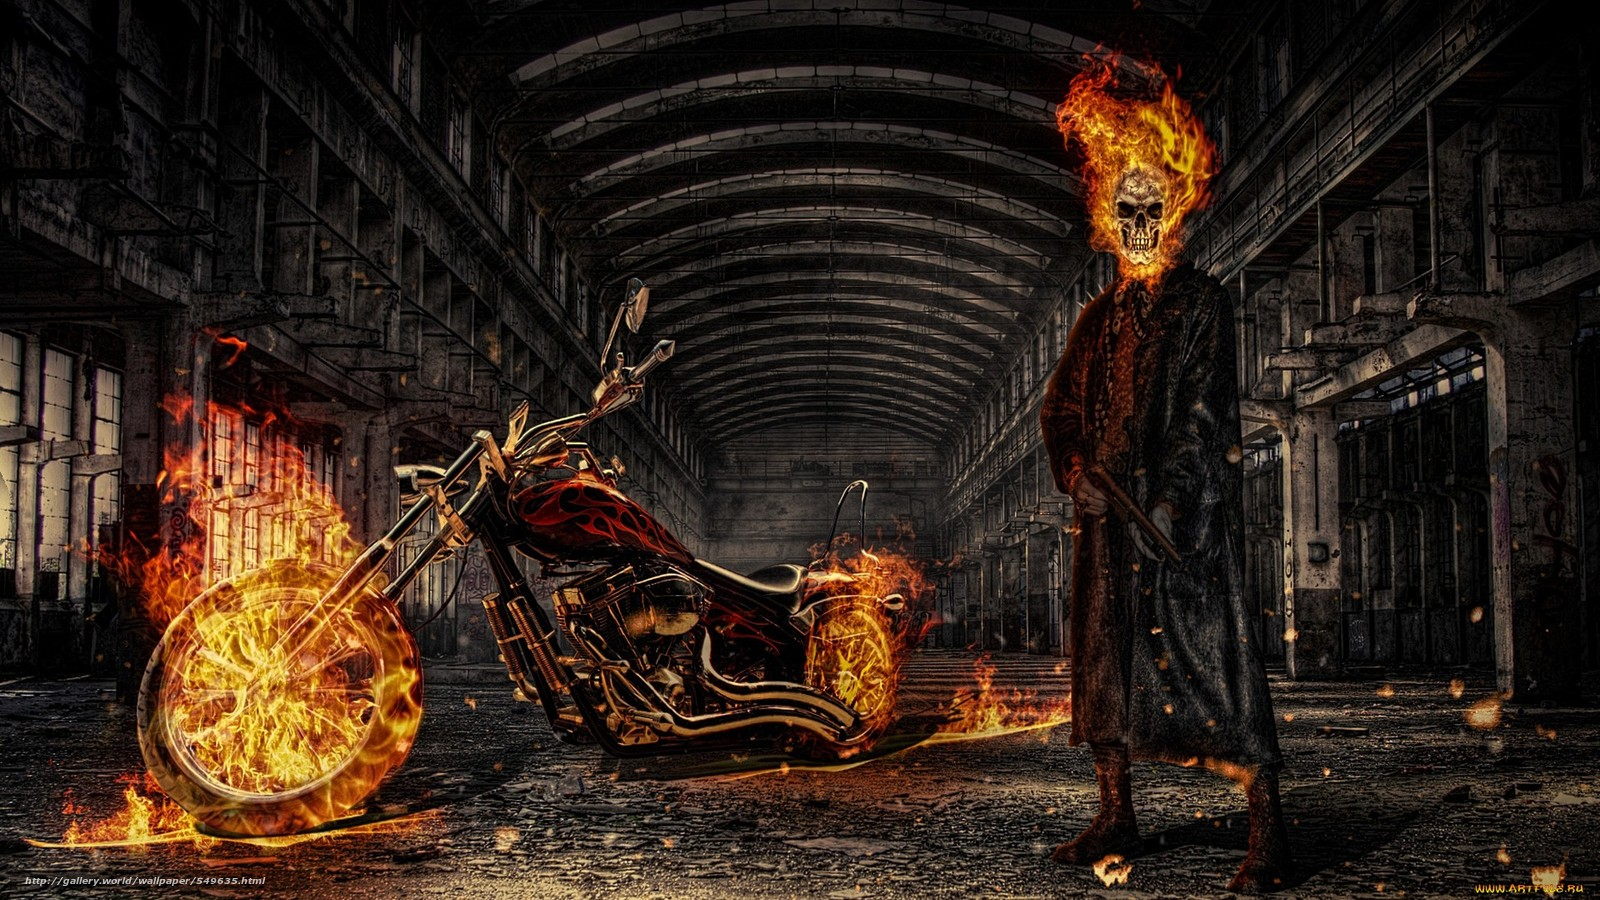 Fotos de ghost rider porno sexy galleries